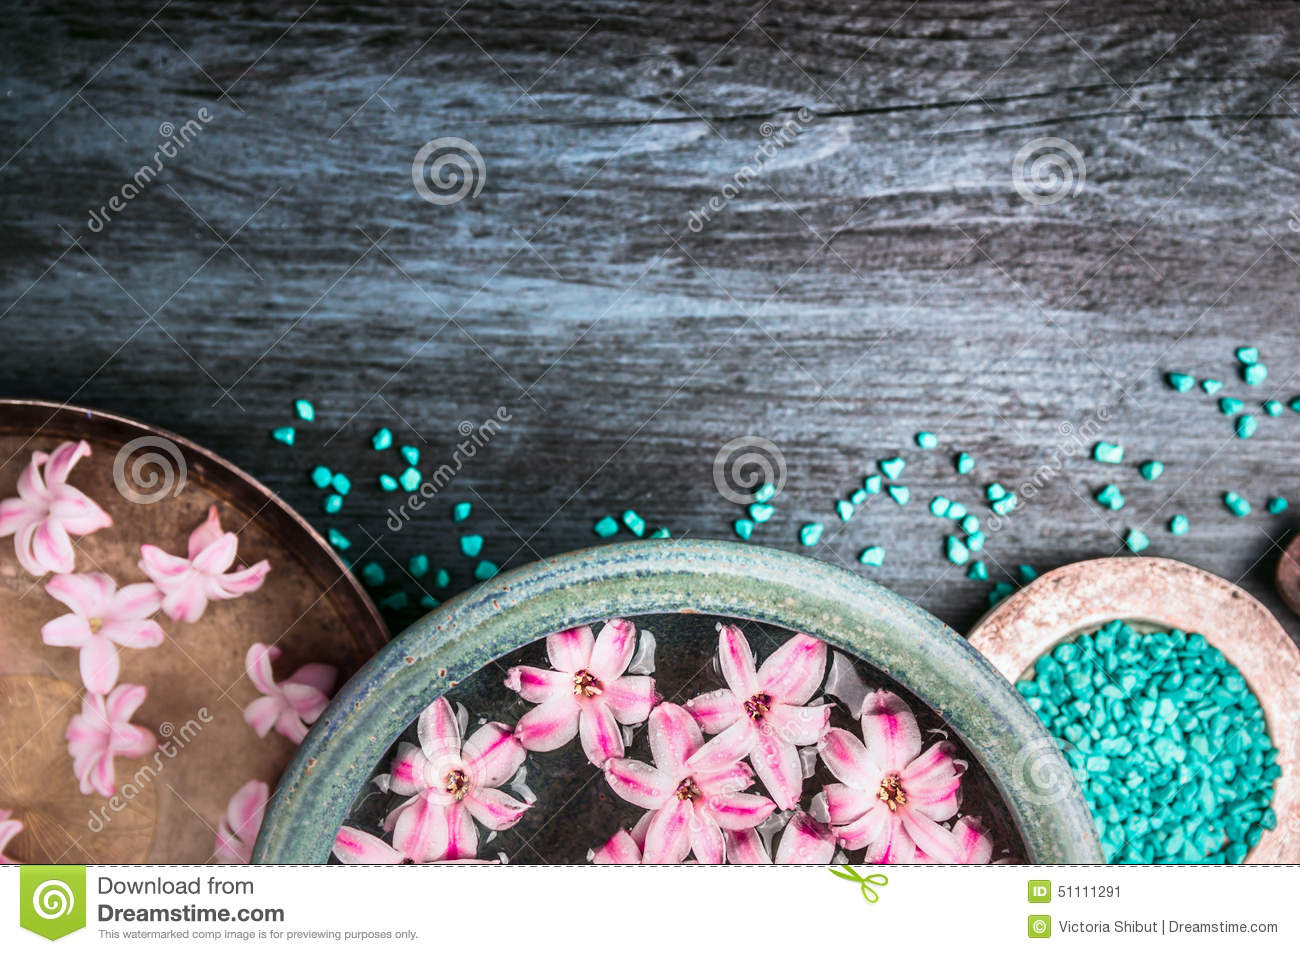 Pink flowers in bowls with water and blue sea salt on wooden table, wellness background, top view